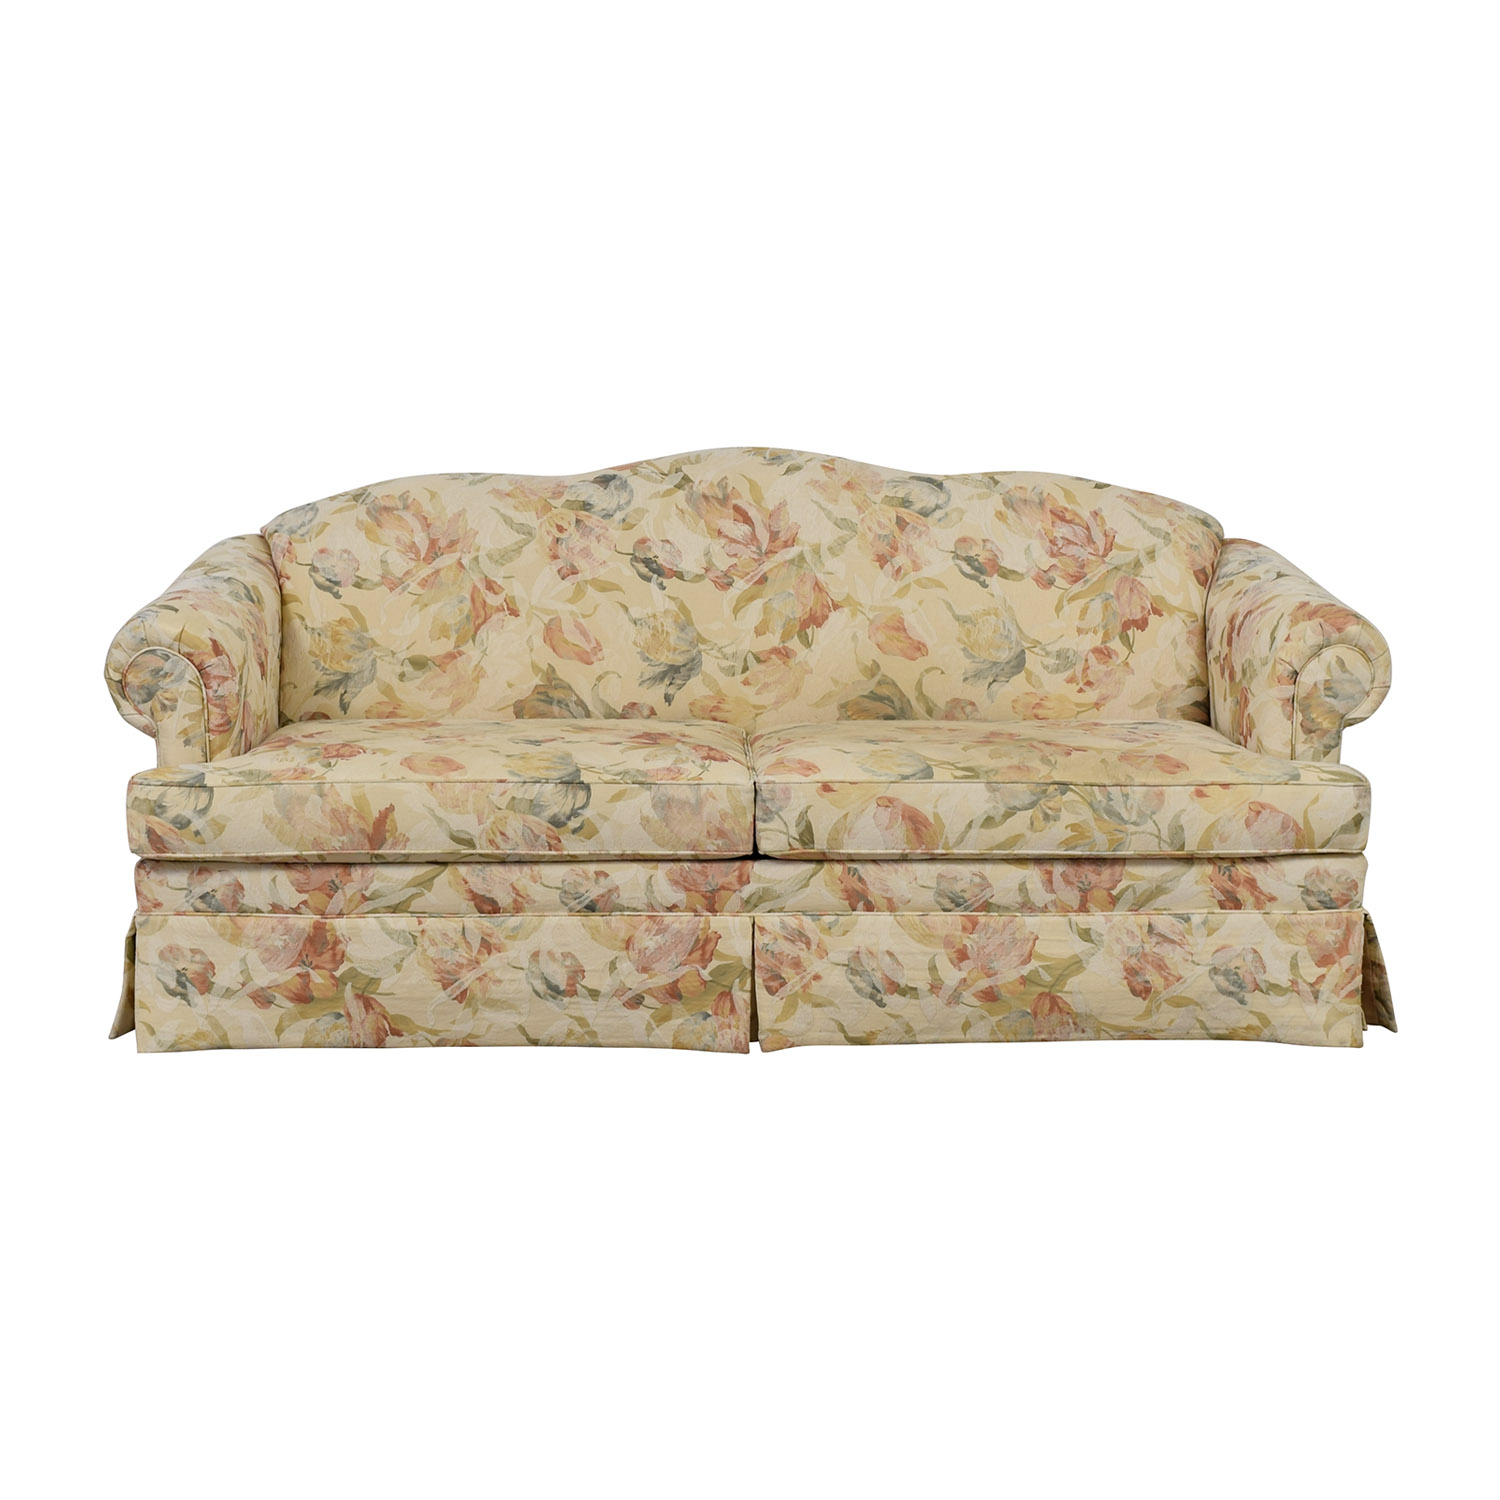 Ethan Allen Ethan Allen Multi-Colored Floral Upholstered Sofa second hand